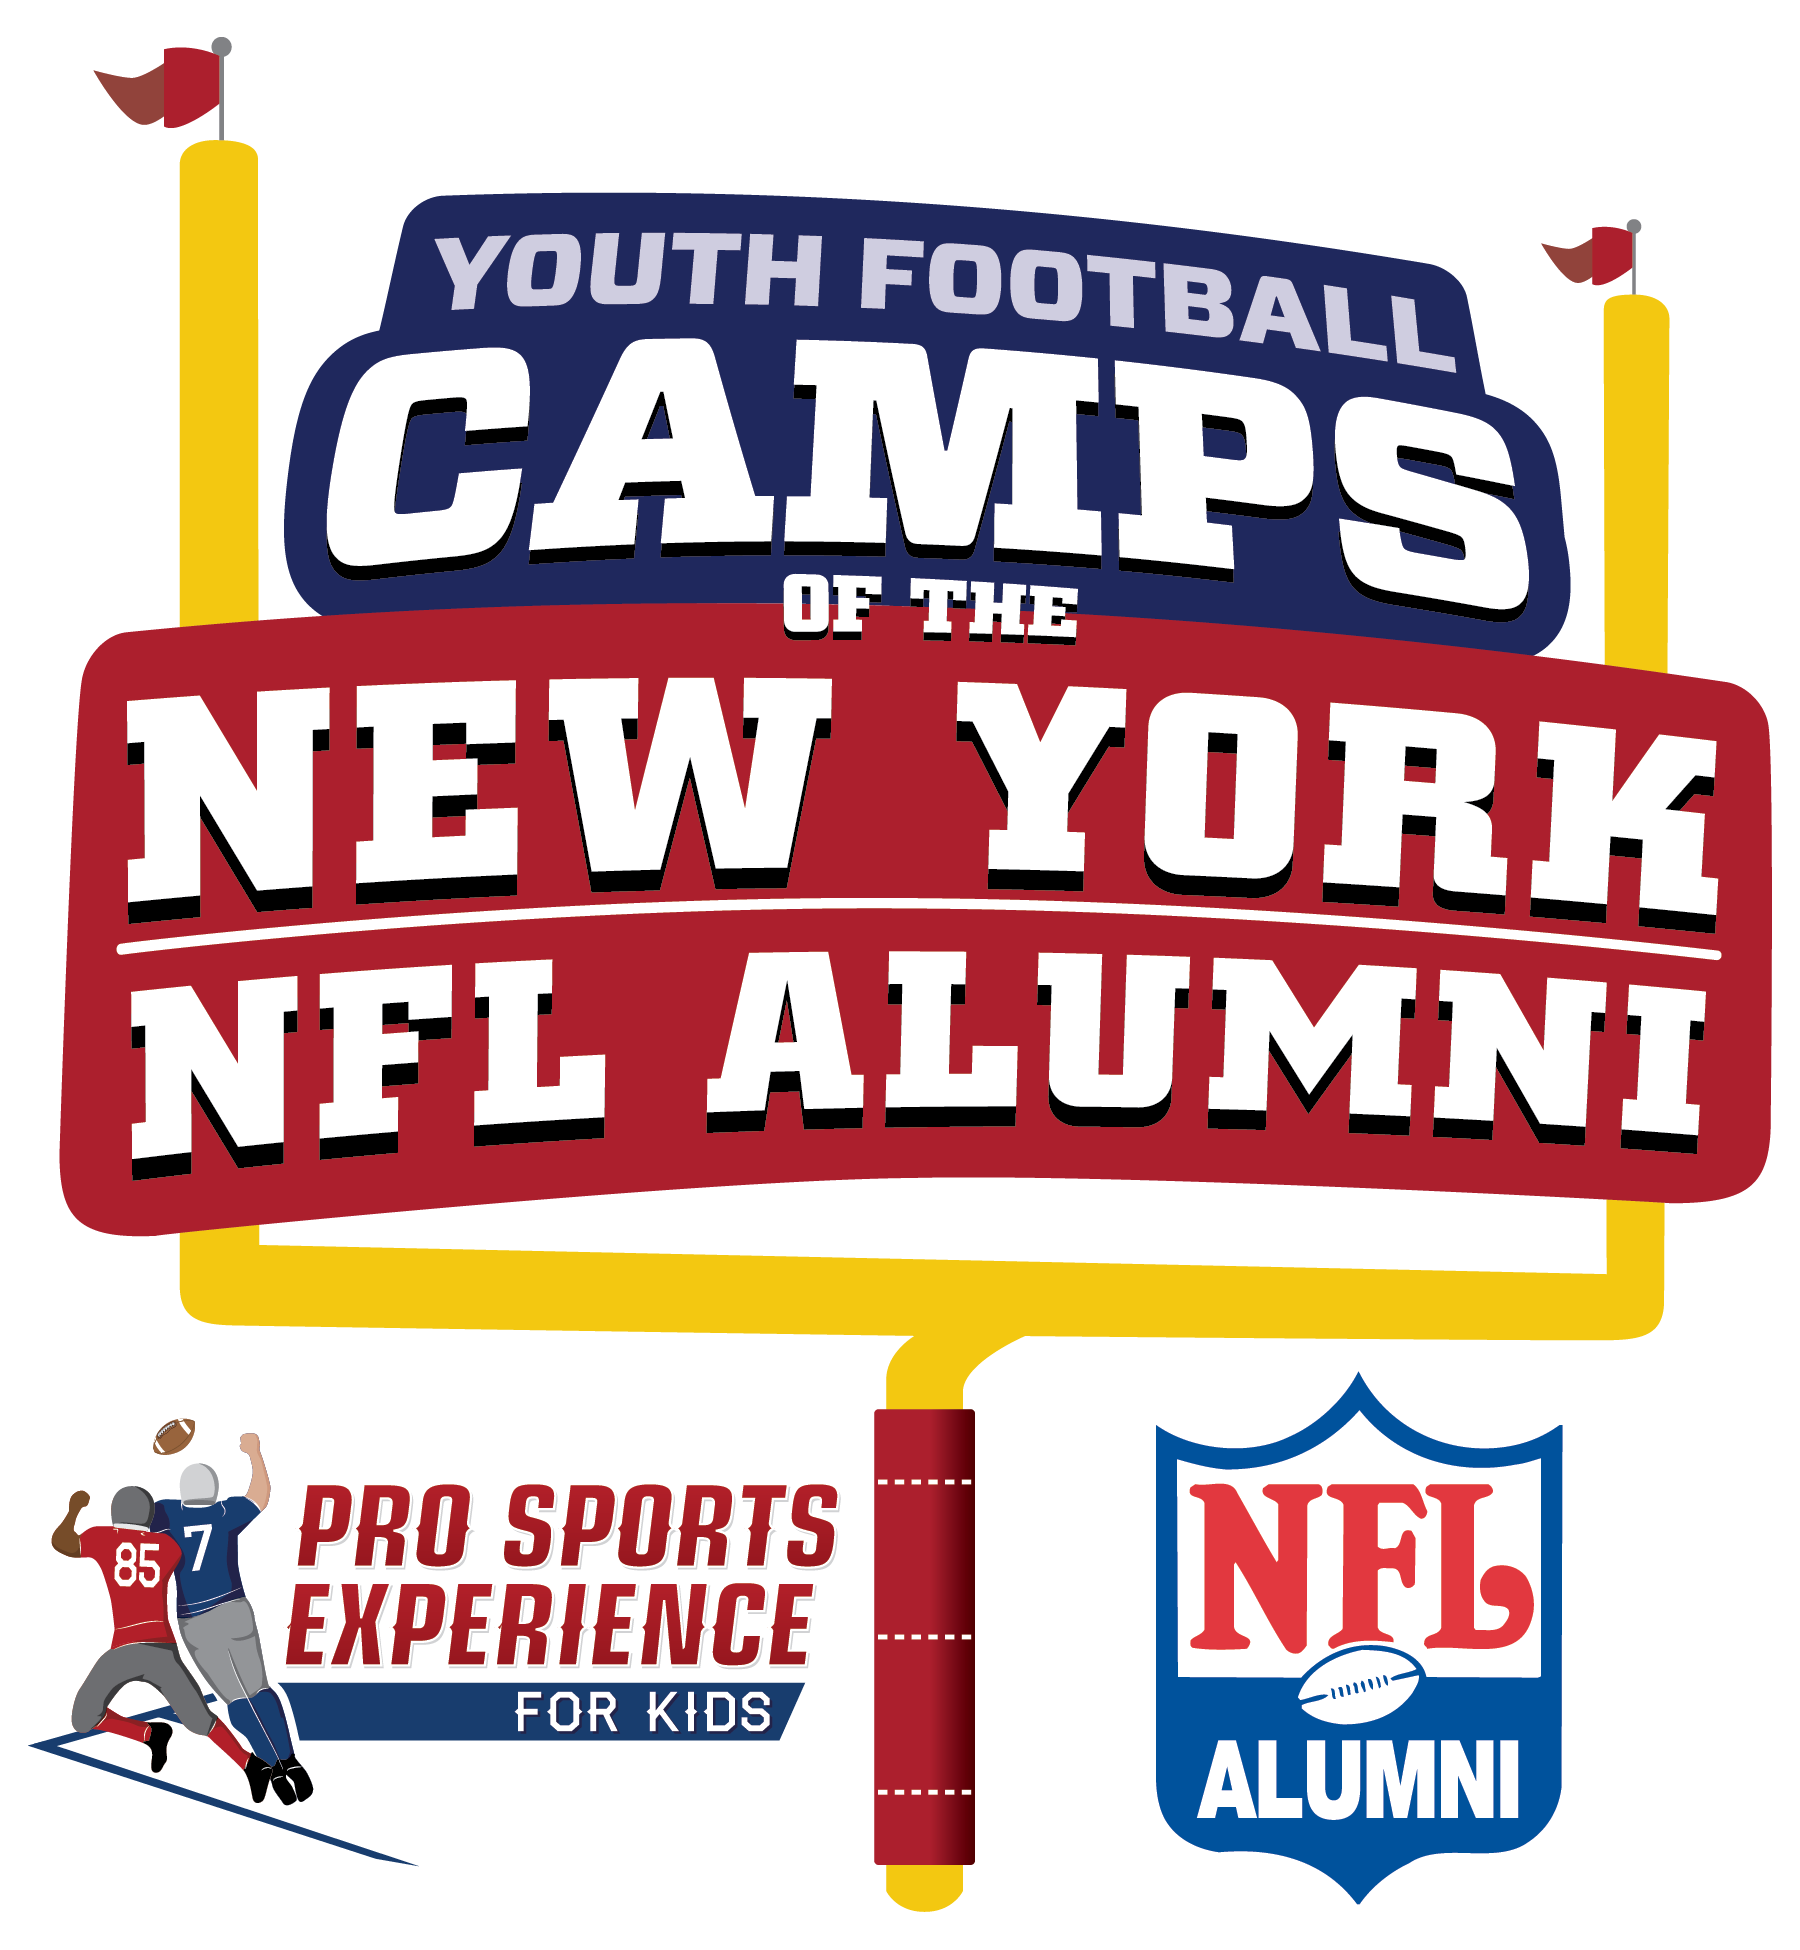 New York NFL Alumni Hero Youth Football Camps - Windsor